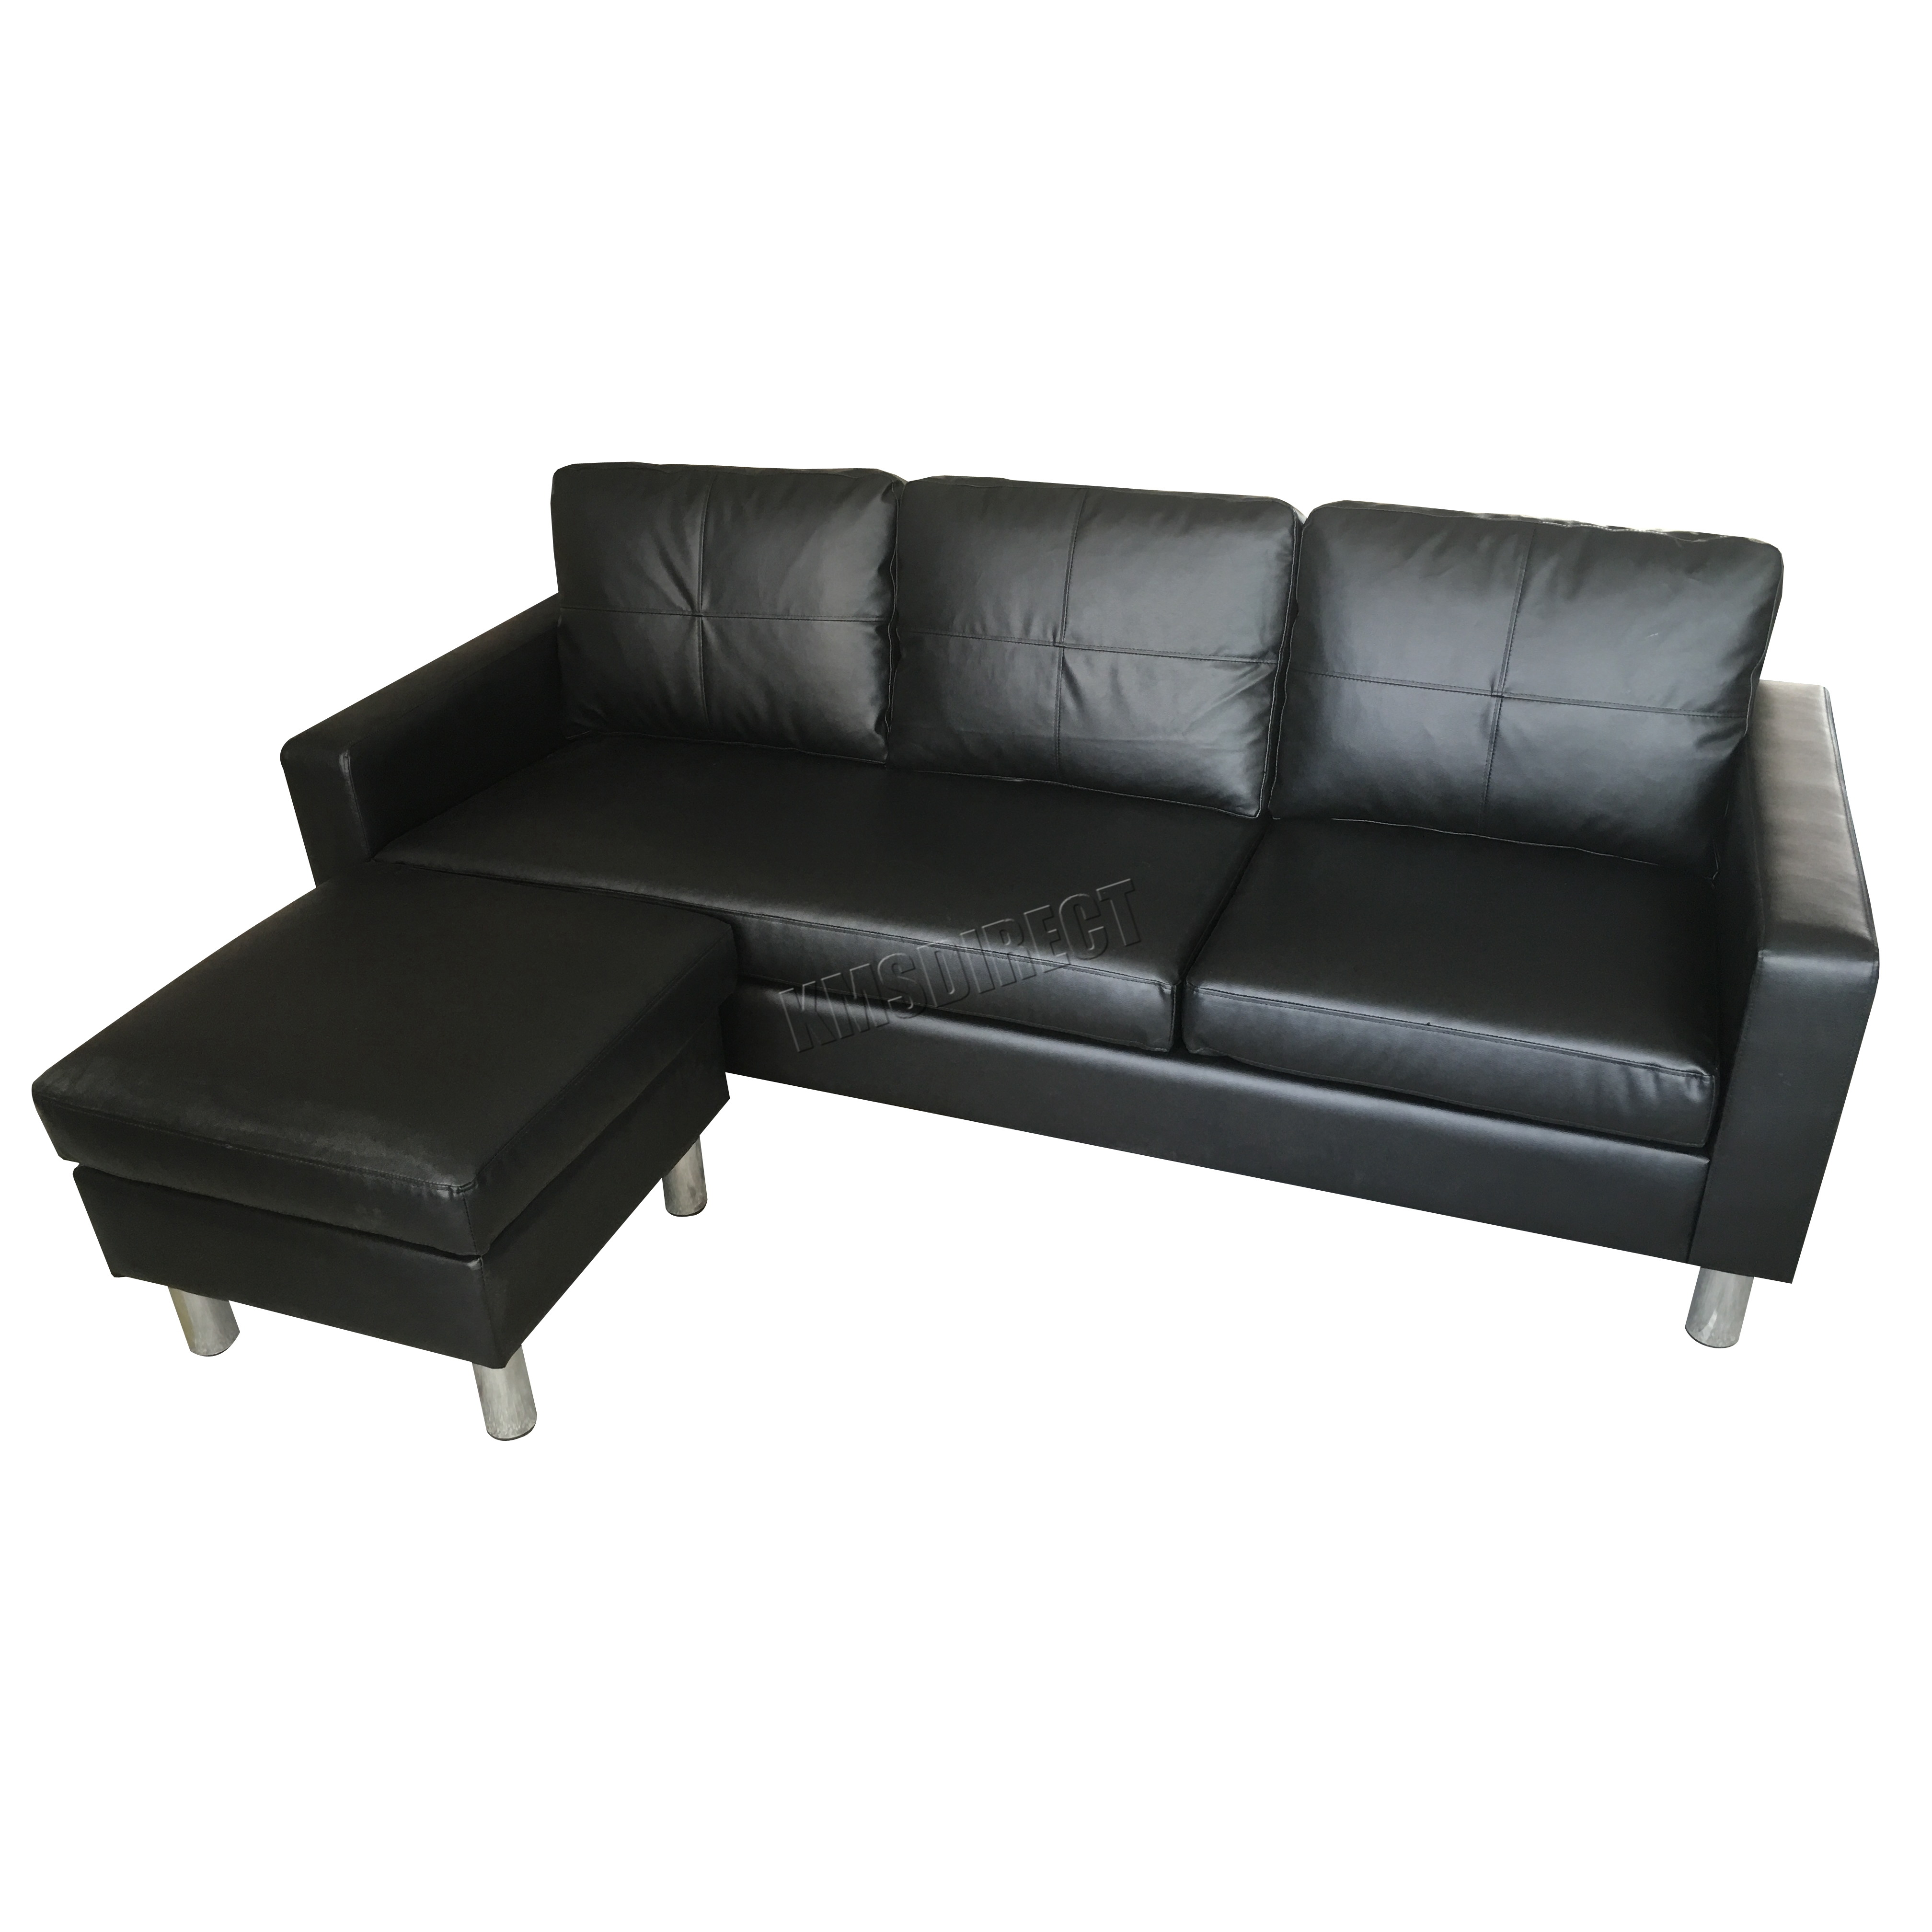 FoxHunter Modern PU L-Shaped Corner 3 Seater Sofa With Chaise Longue on chaise sofa sleeper, chaise furniture, chaise recliner chair,